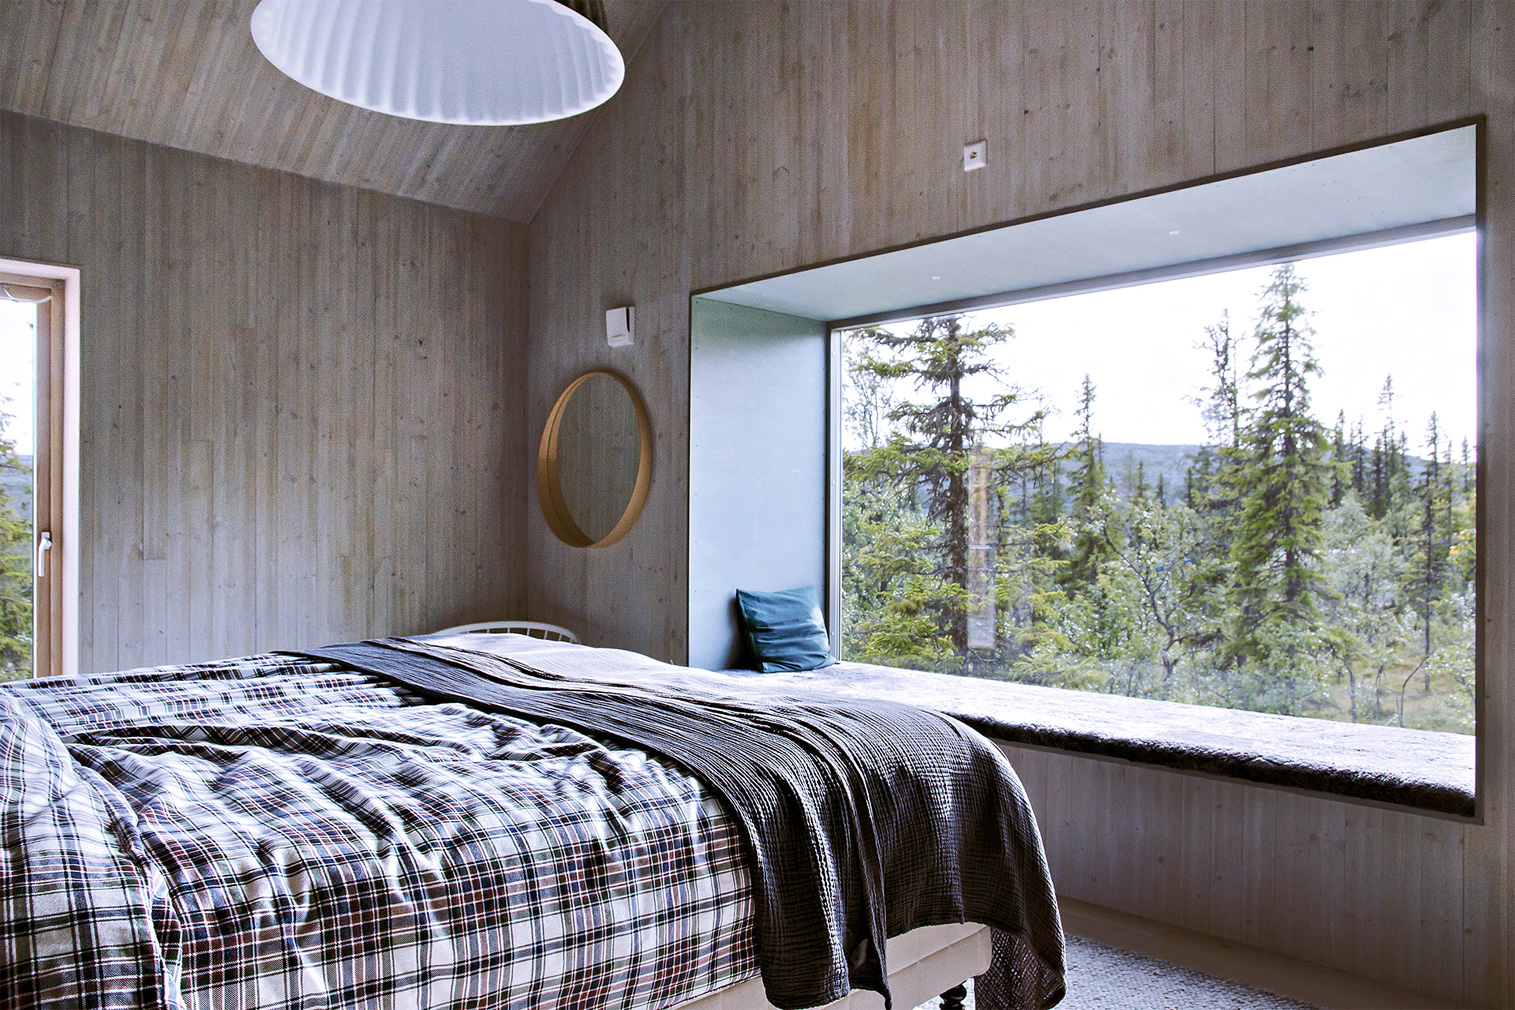 Slope living gets a contemporary spin inside this Vemdalen ski chalet